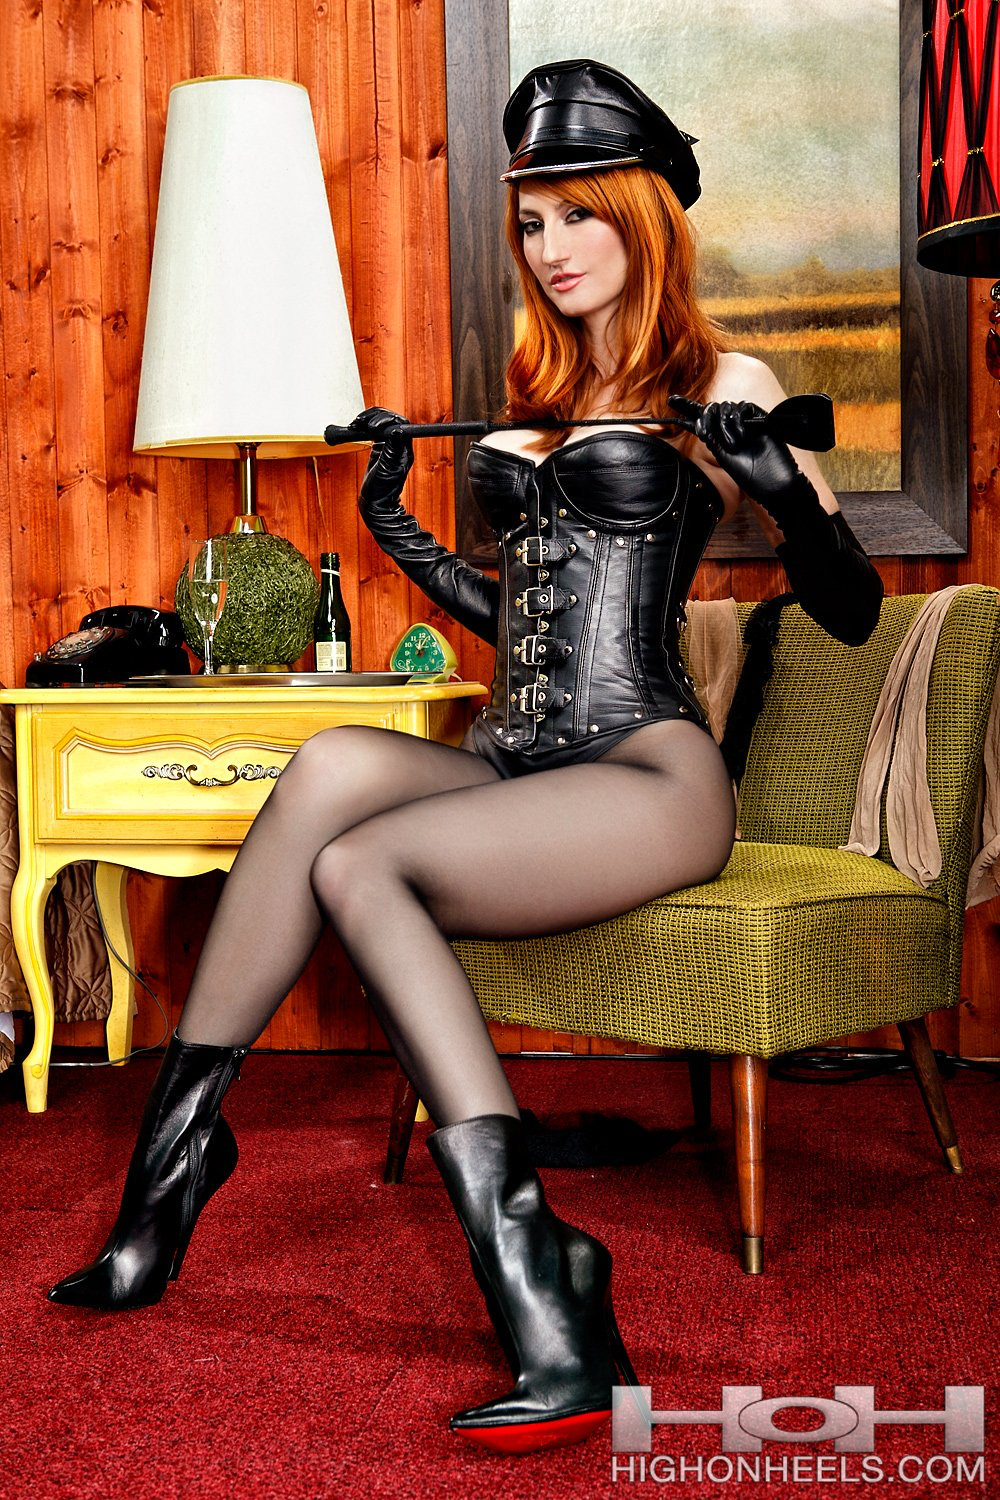 domination exhibitionist maid Shemale